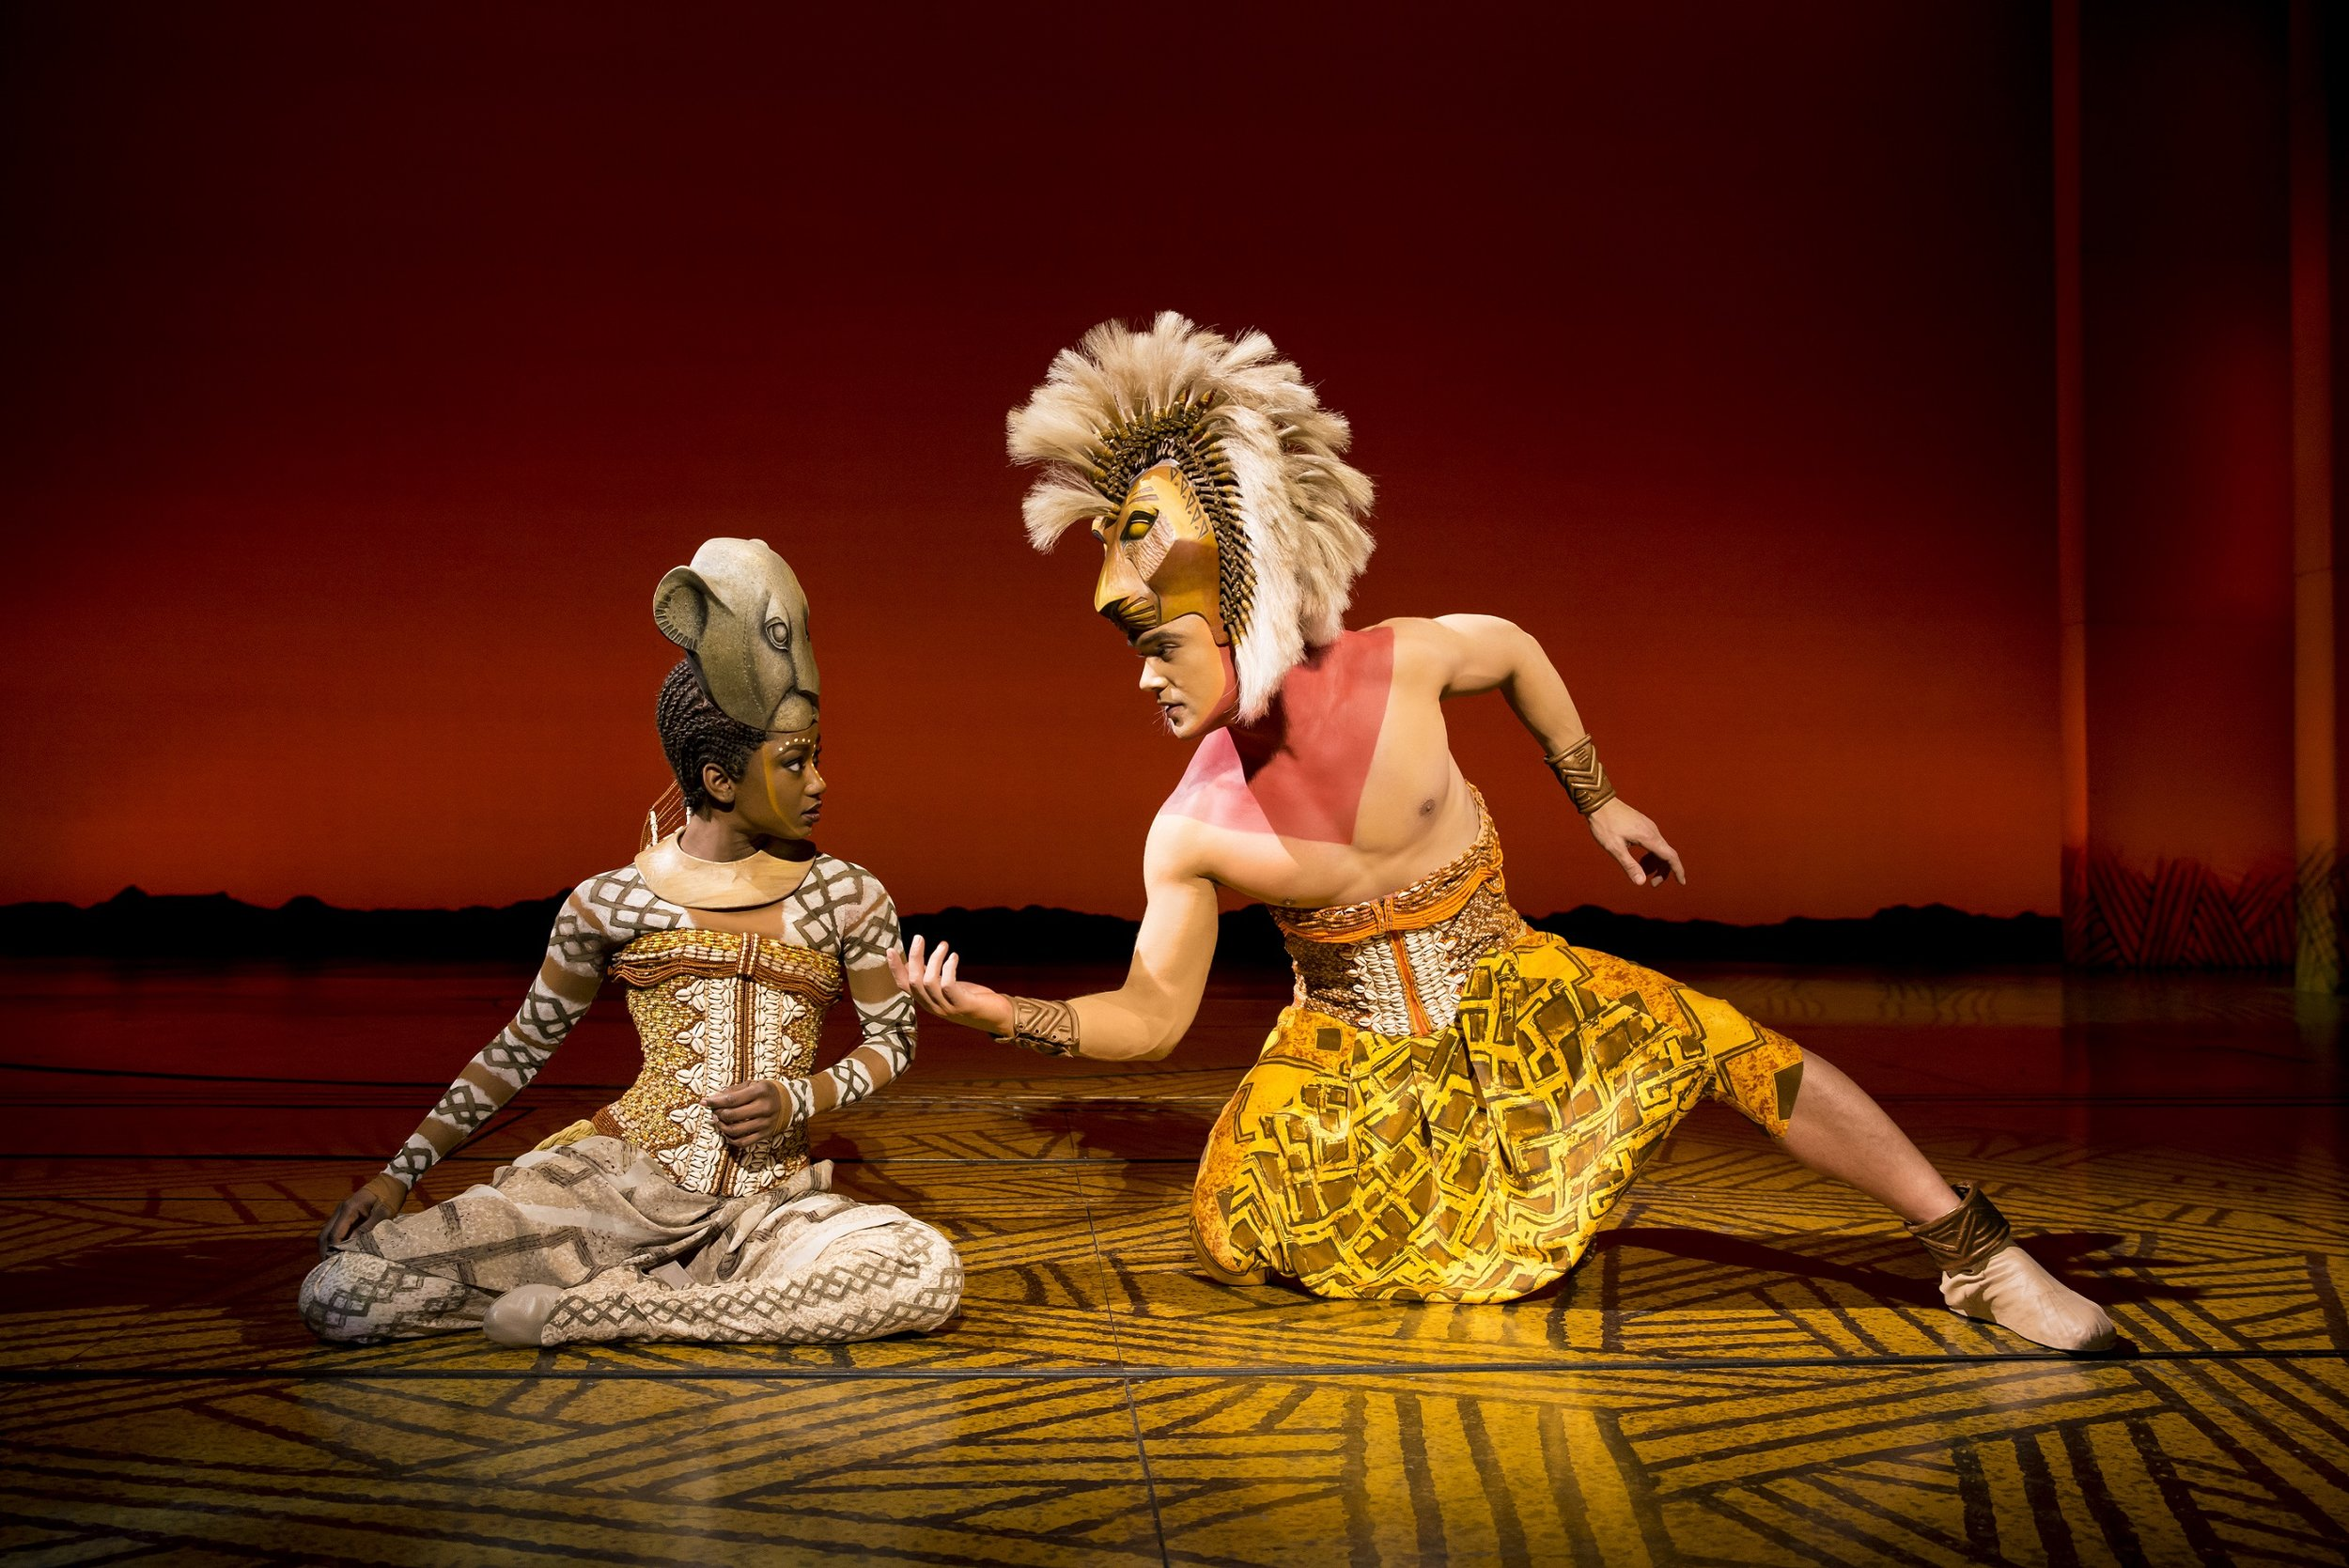 Nick Afoa as Simba and Janique Charles as Nala in the 2017 stage presentation of The Lion King. The latest tour of the show comes to Bristol Hippodrome from September 7 until November 23, 2019.Photo: ®Disney